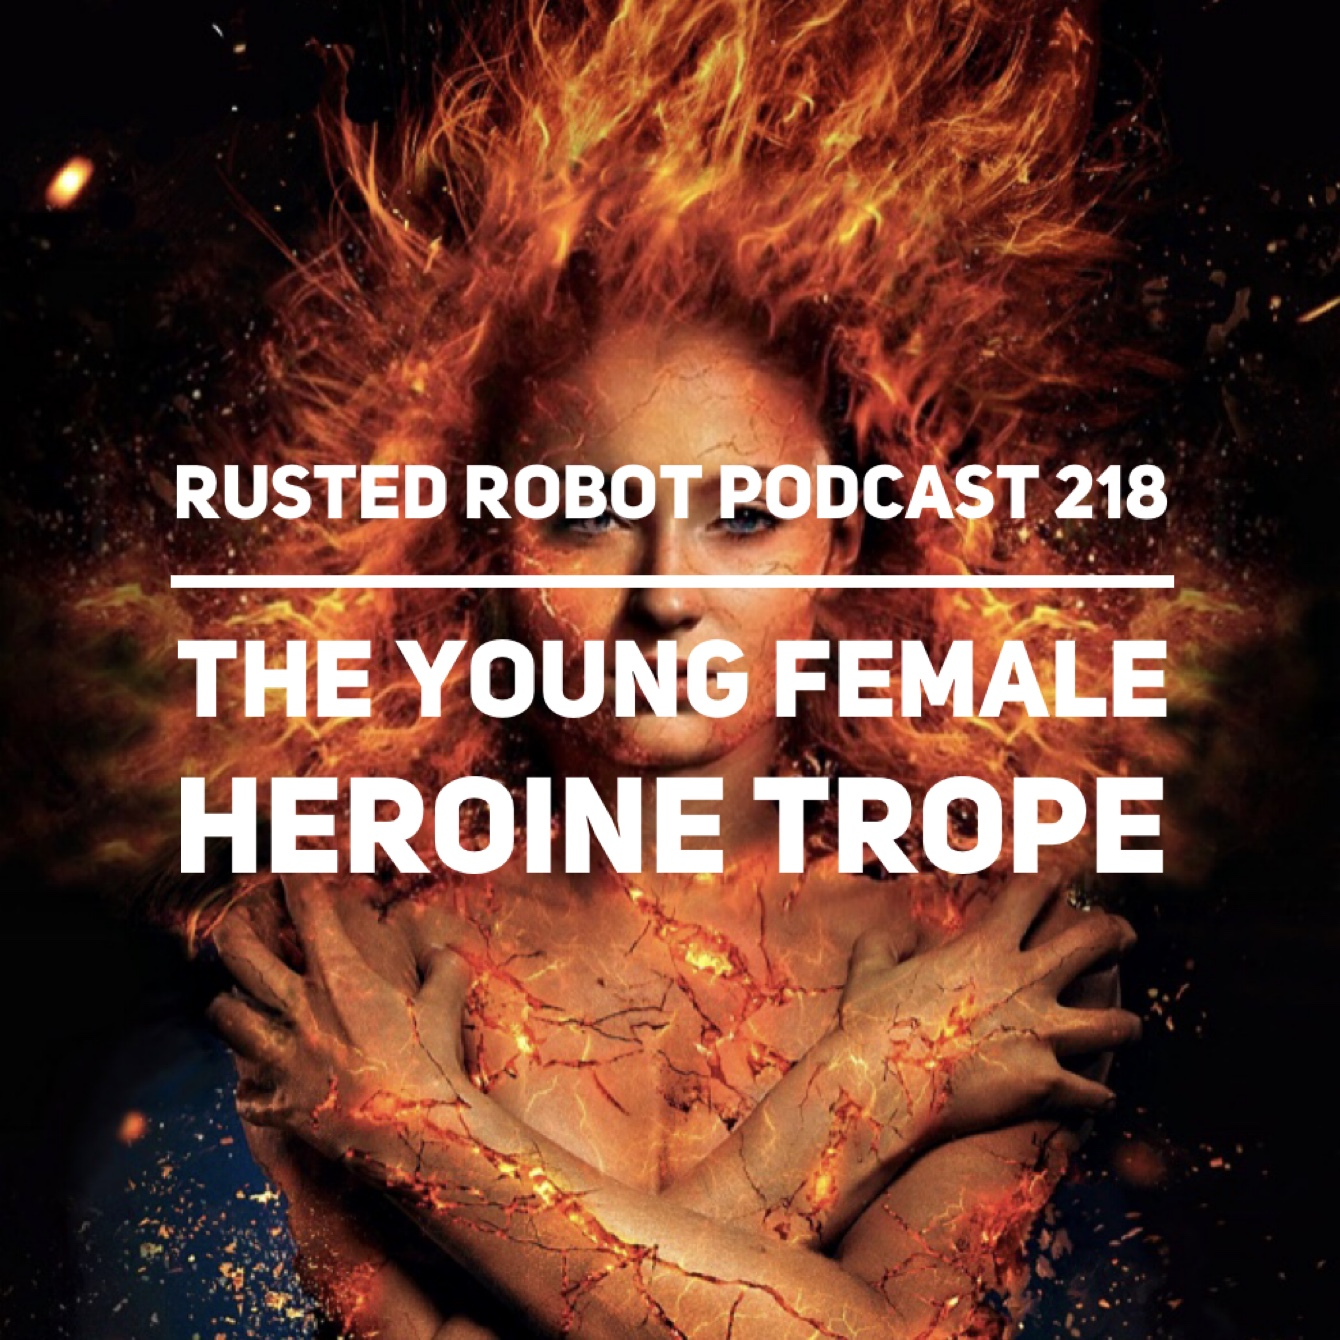 218: The Young Female Heroine Trope